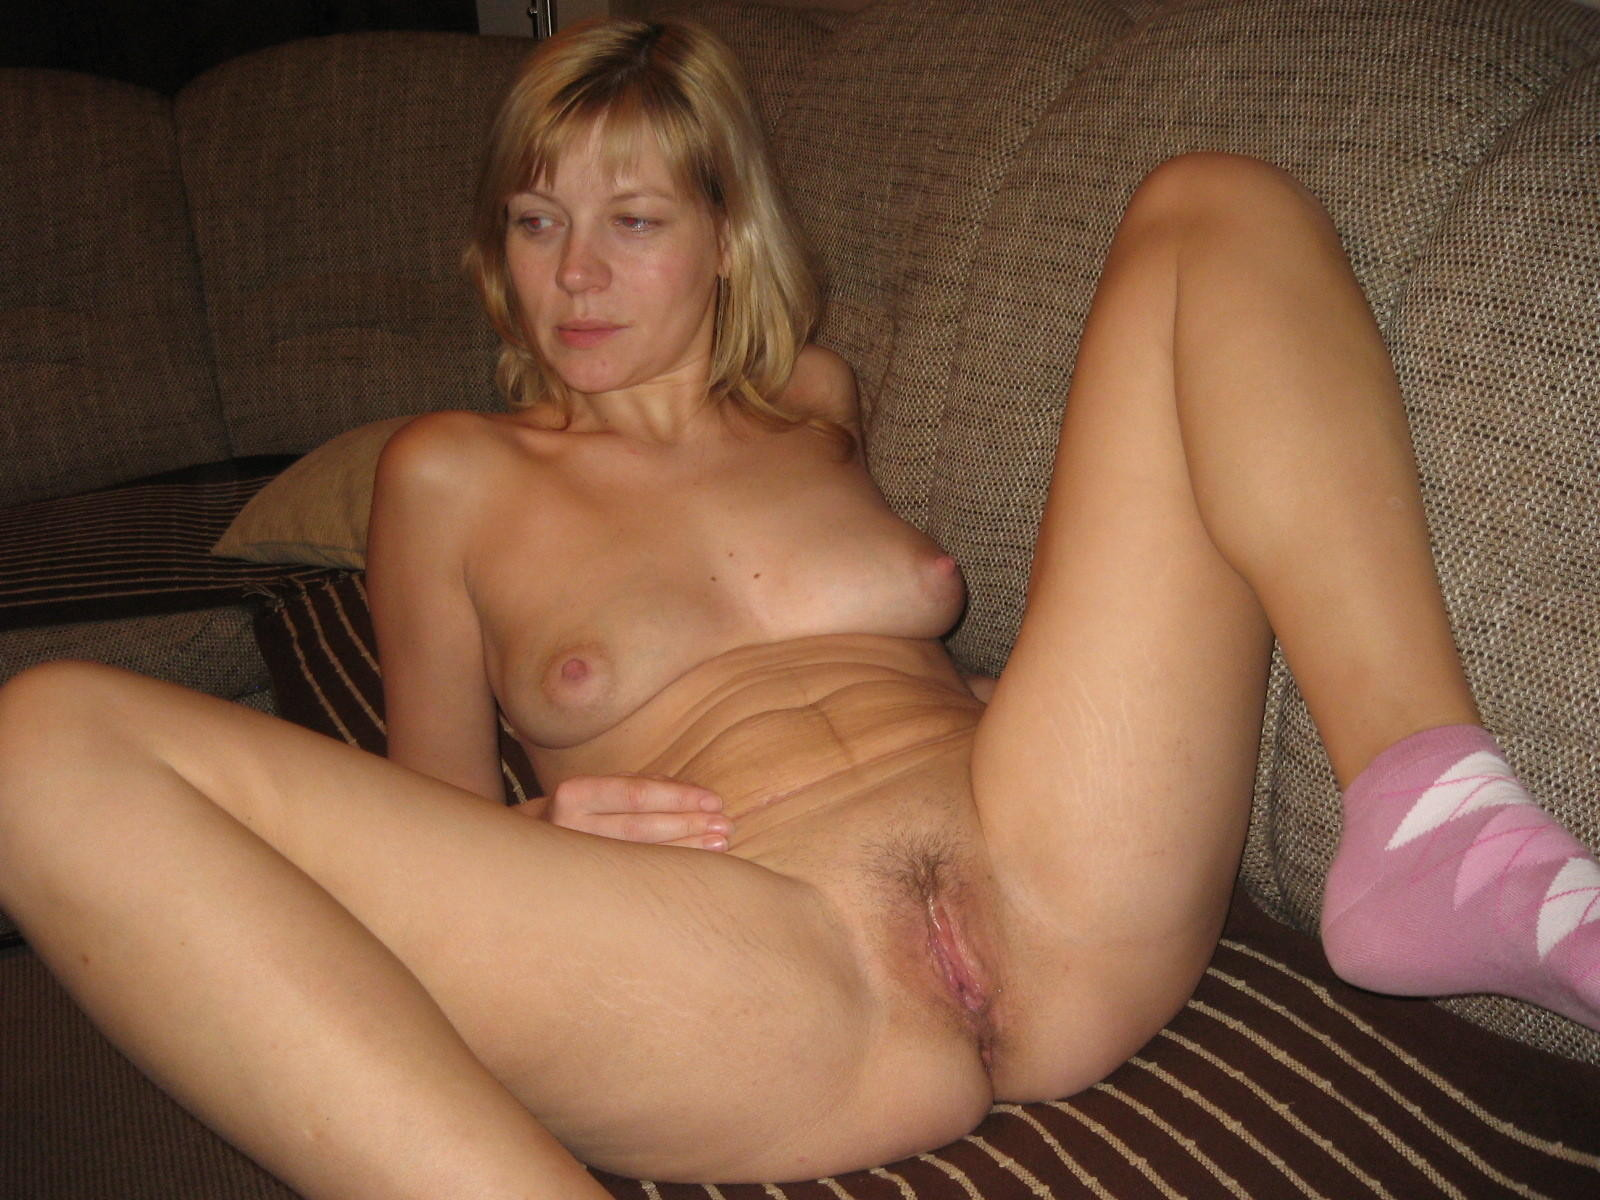 Images of Cunt Spread Wide - Amateur Adult Gallery